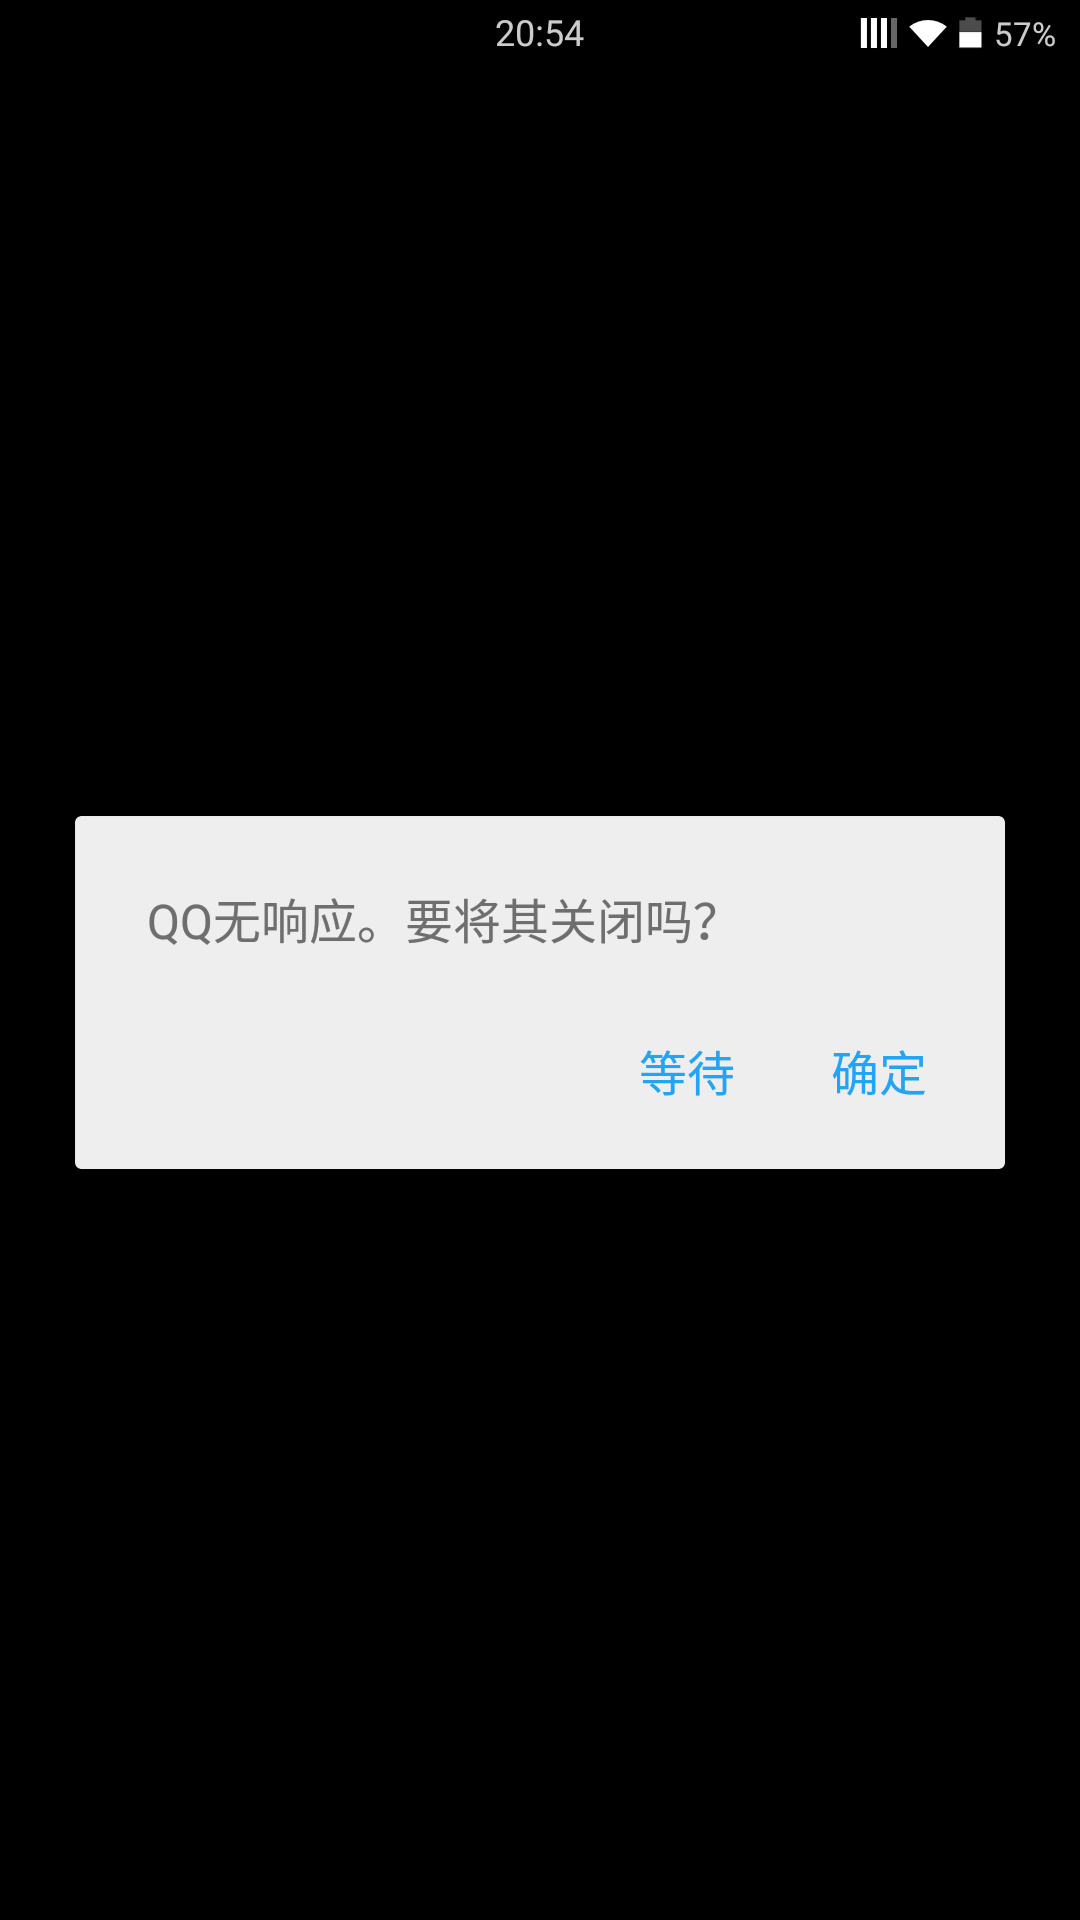 Screenshot_2015-06-13-20-54-53.png